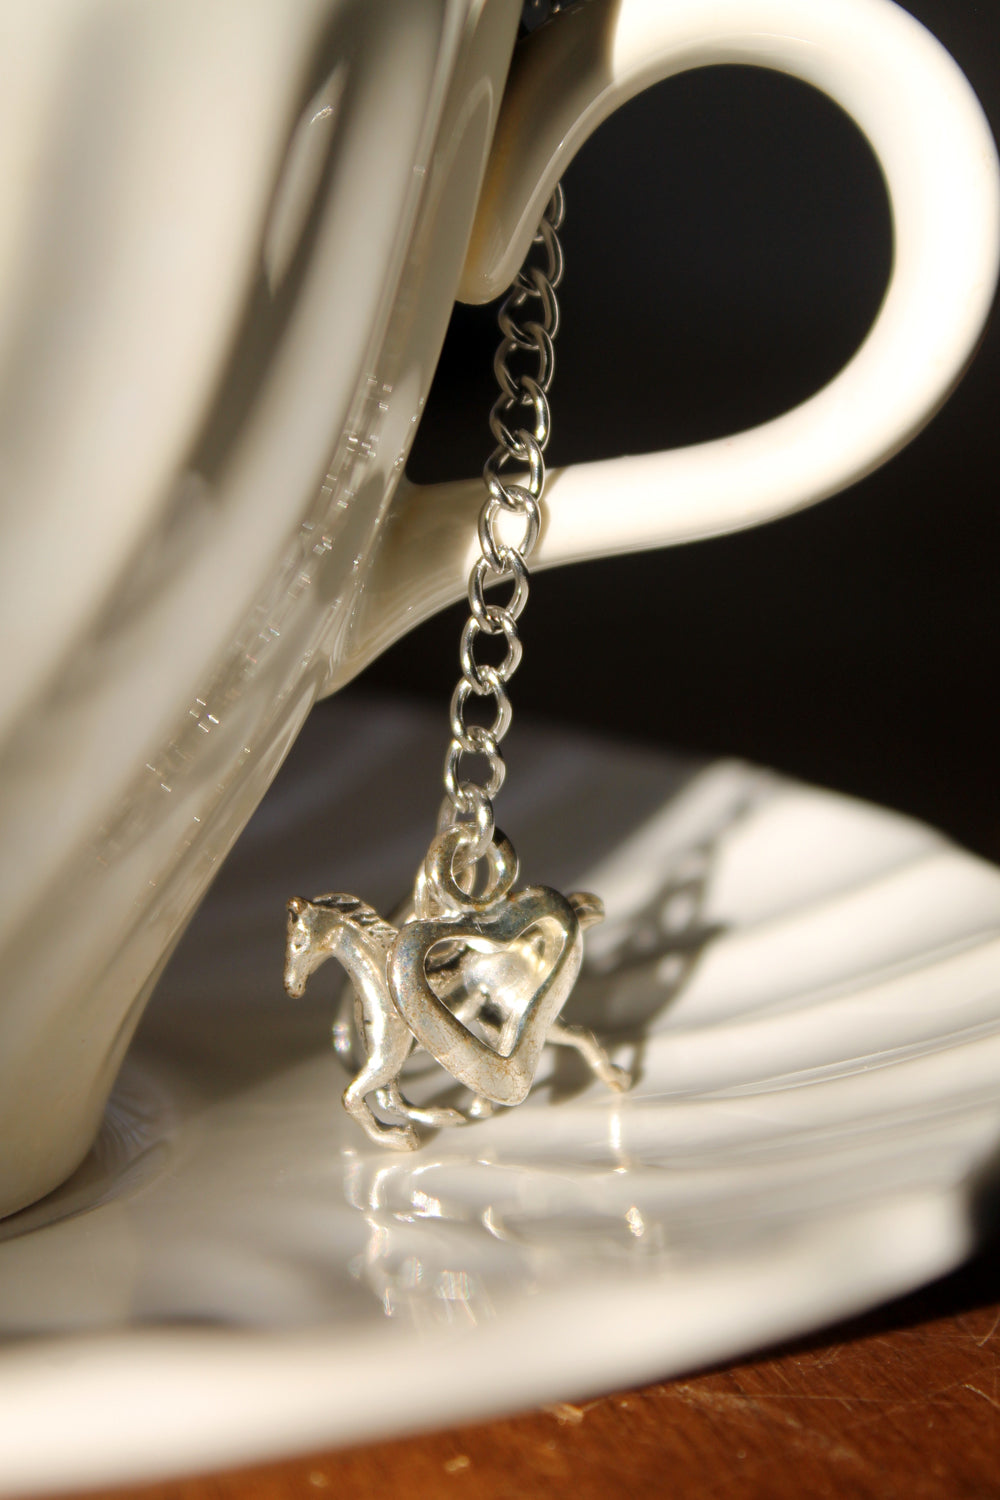 tea ball, mesh tea ball with charms, horse and heart